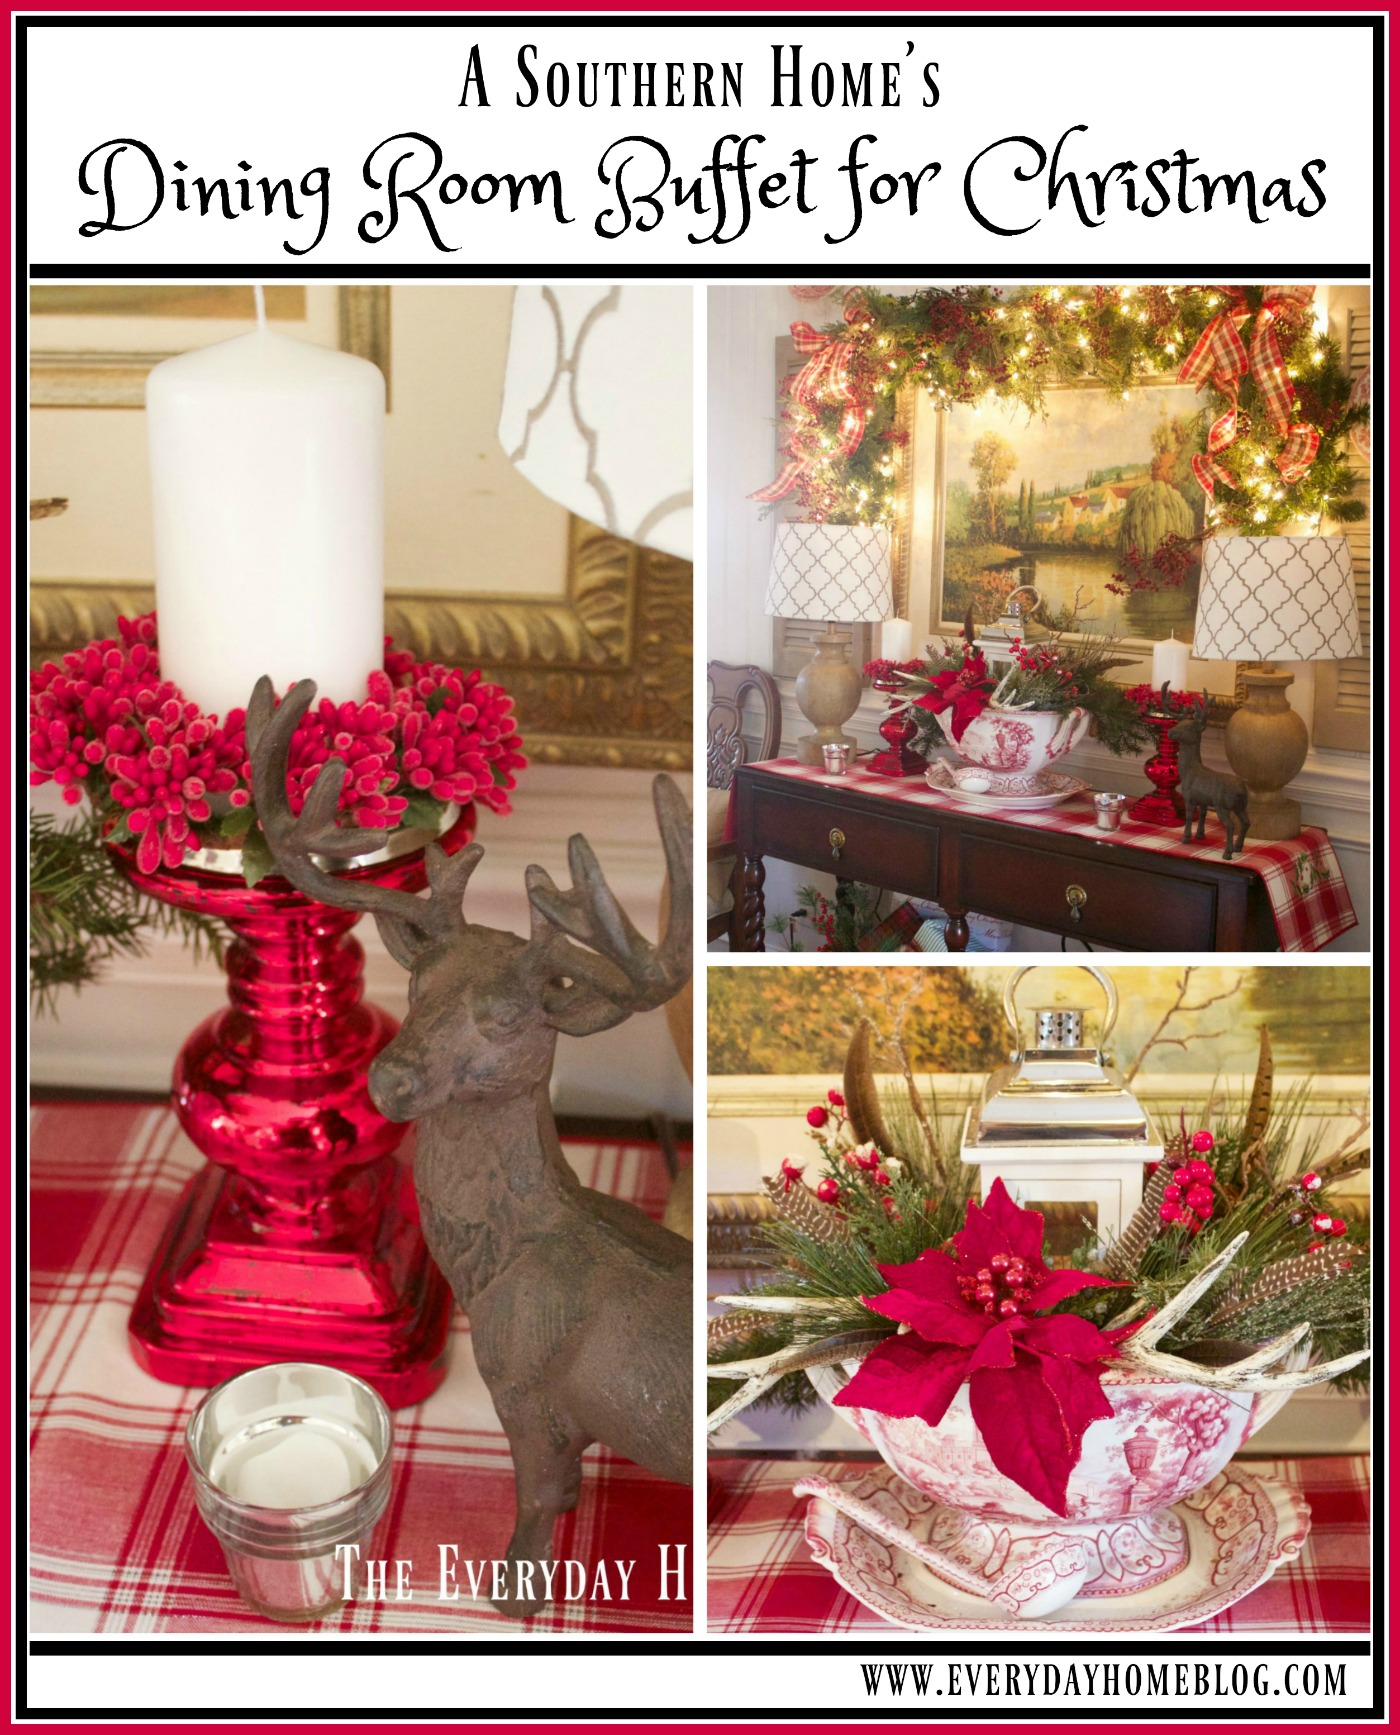 dining-room-buffet-for-christmas-in-a-southern-home